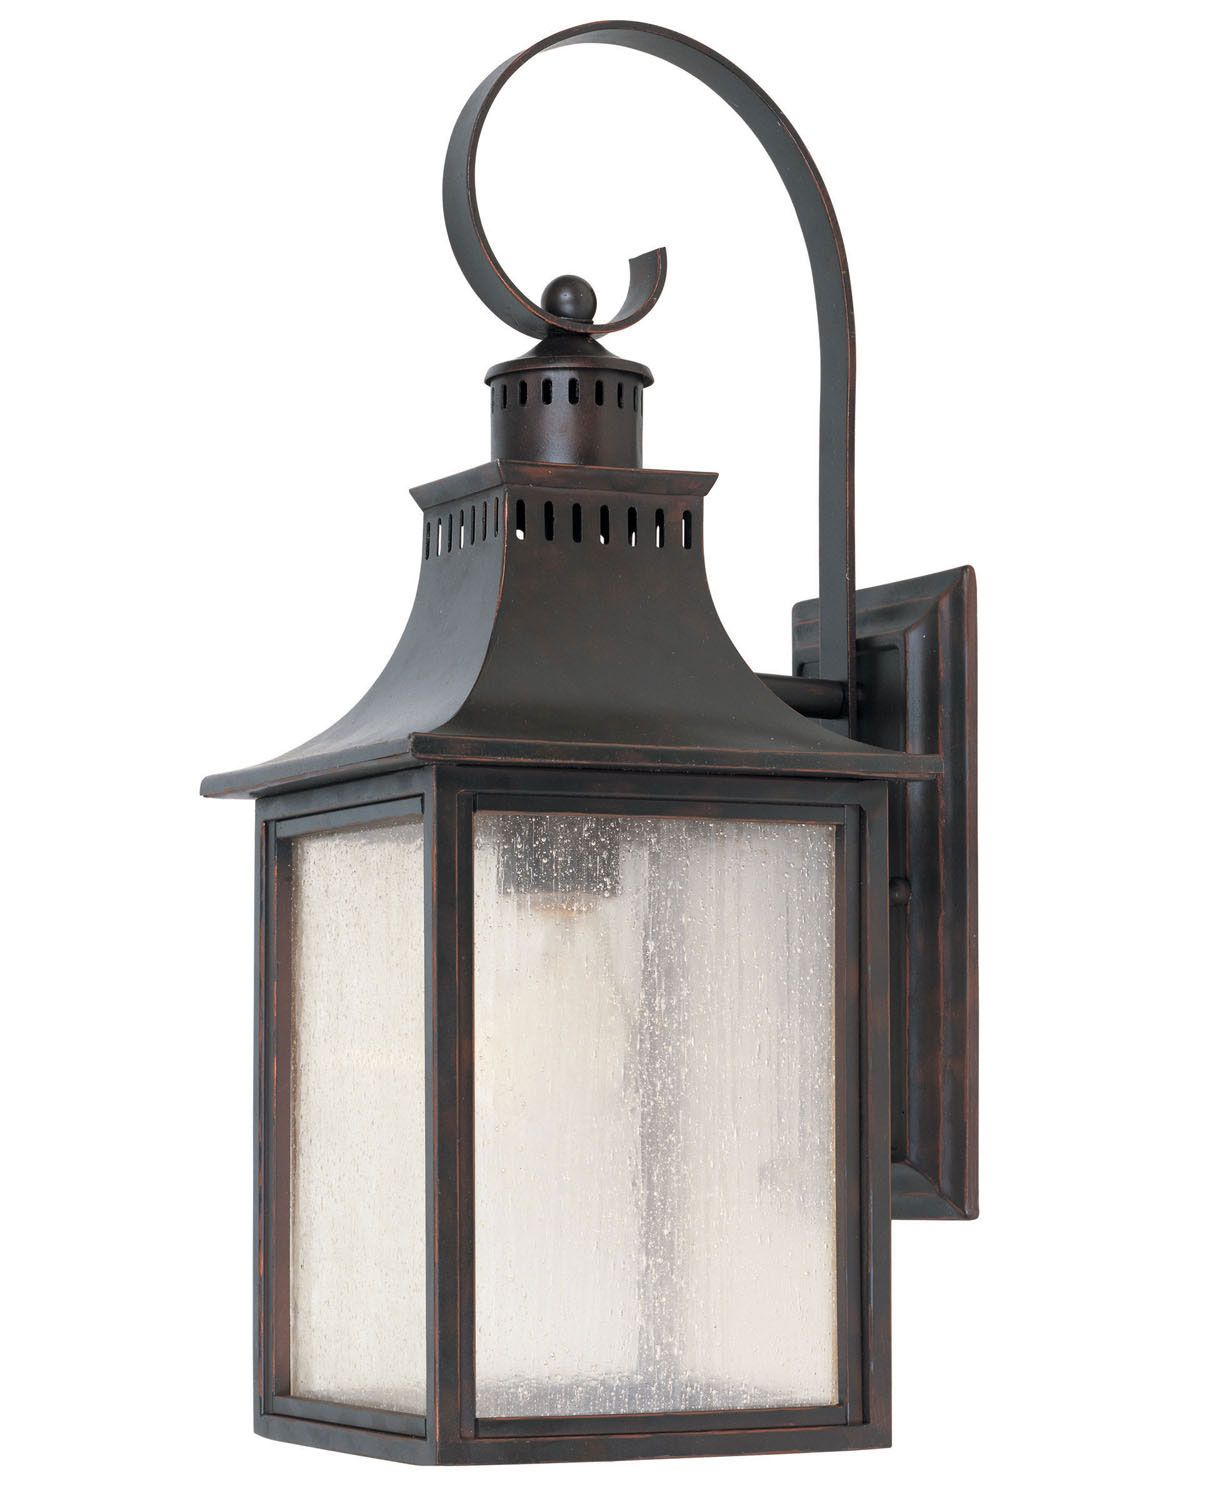 Clearance outdoor wall lighting outdoor lighting ideas come by our charleston sc lighting clearance center to see thiore great aloadofball Gallery